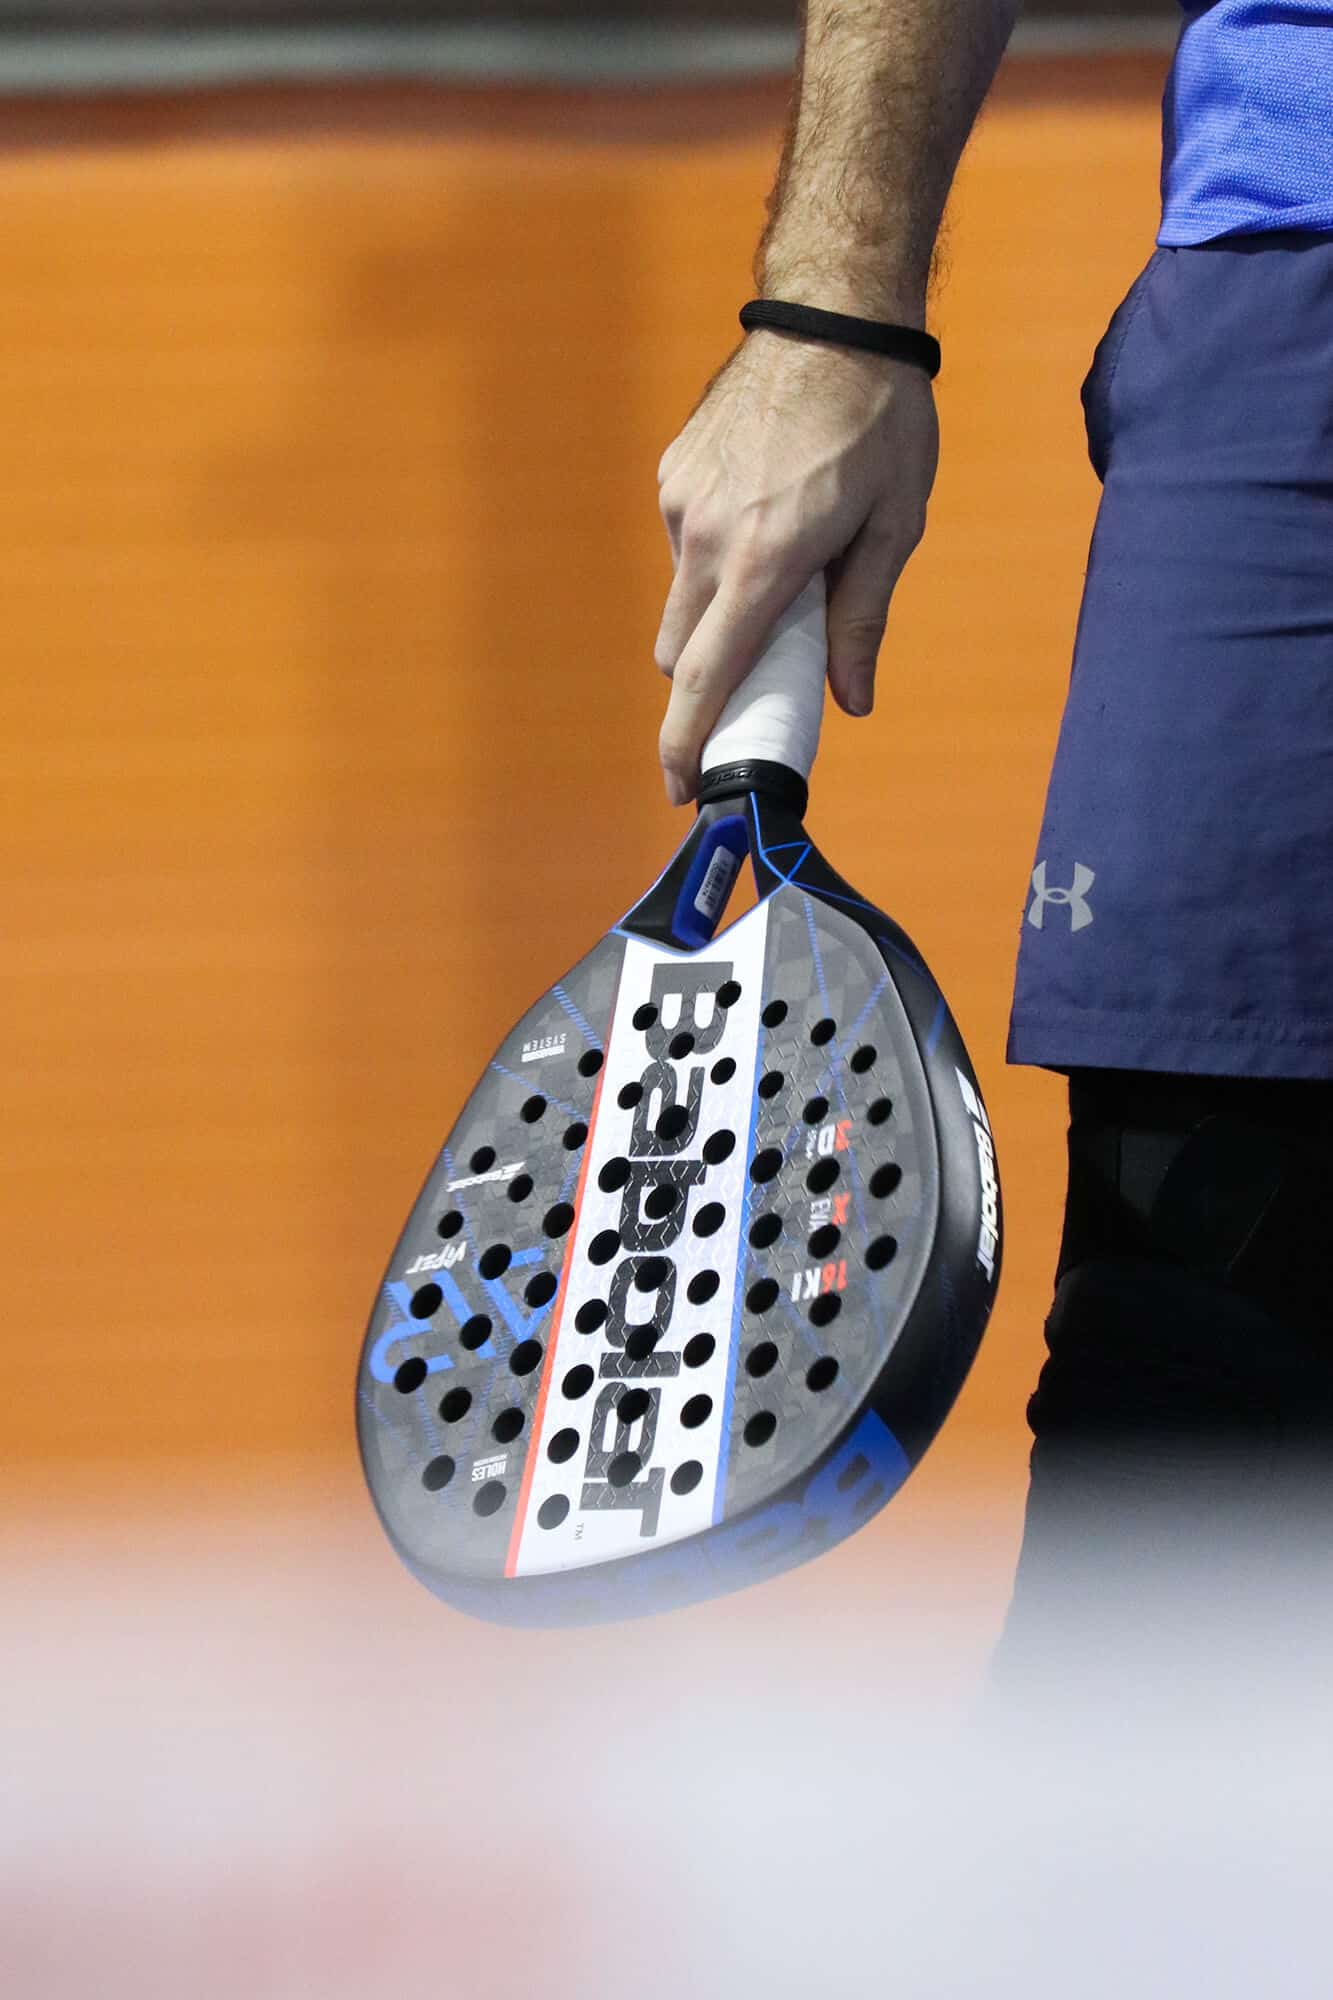 Padel free images - player with a racket